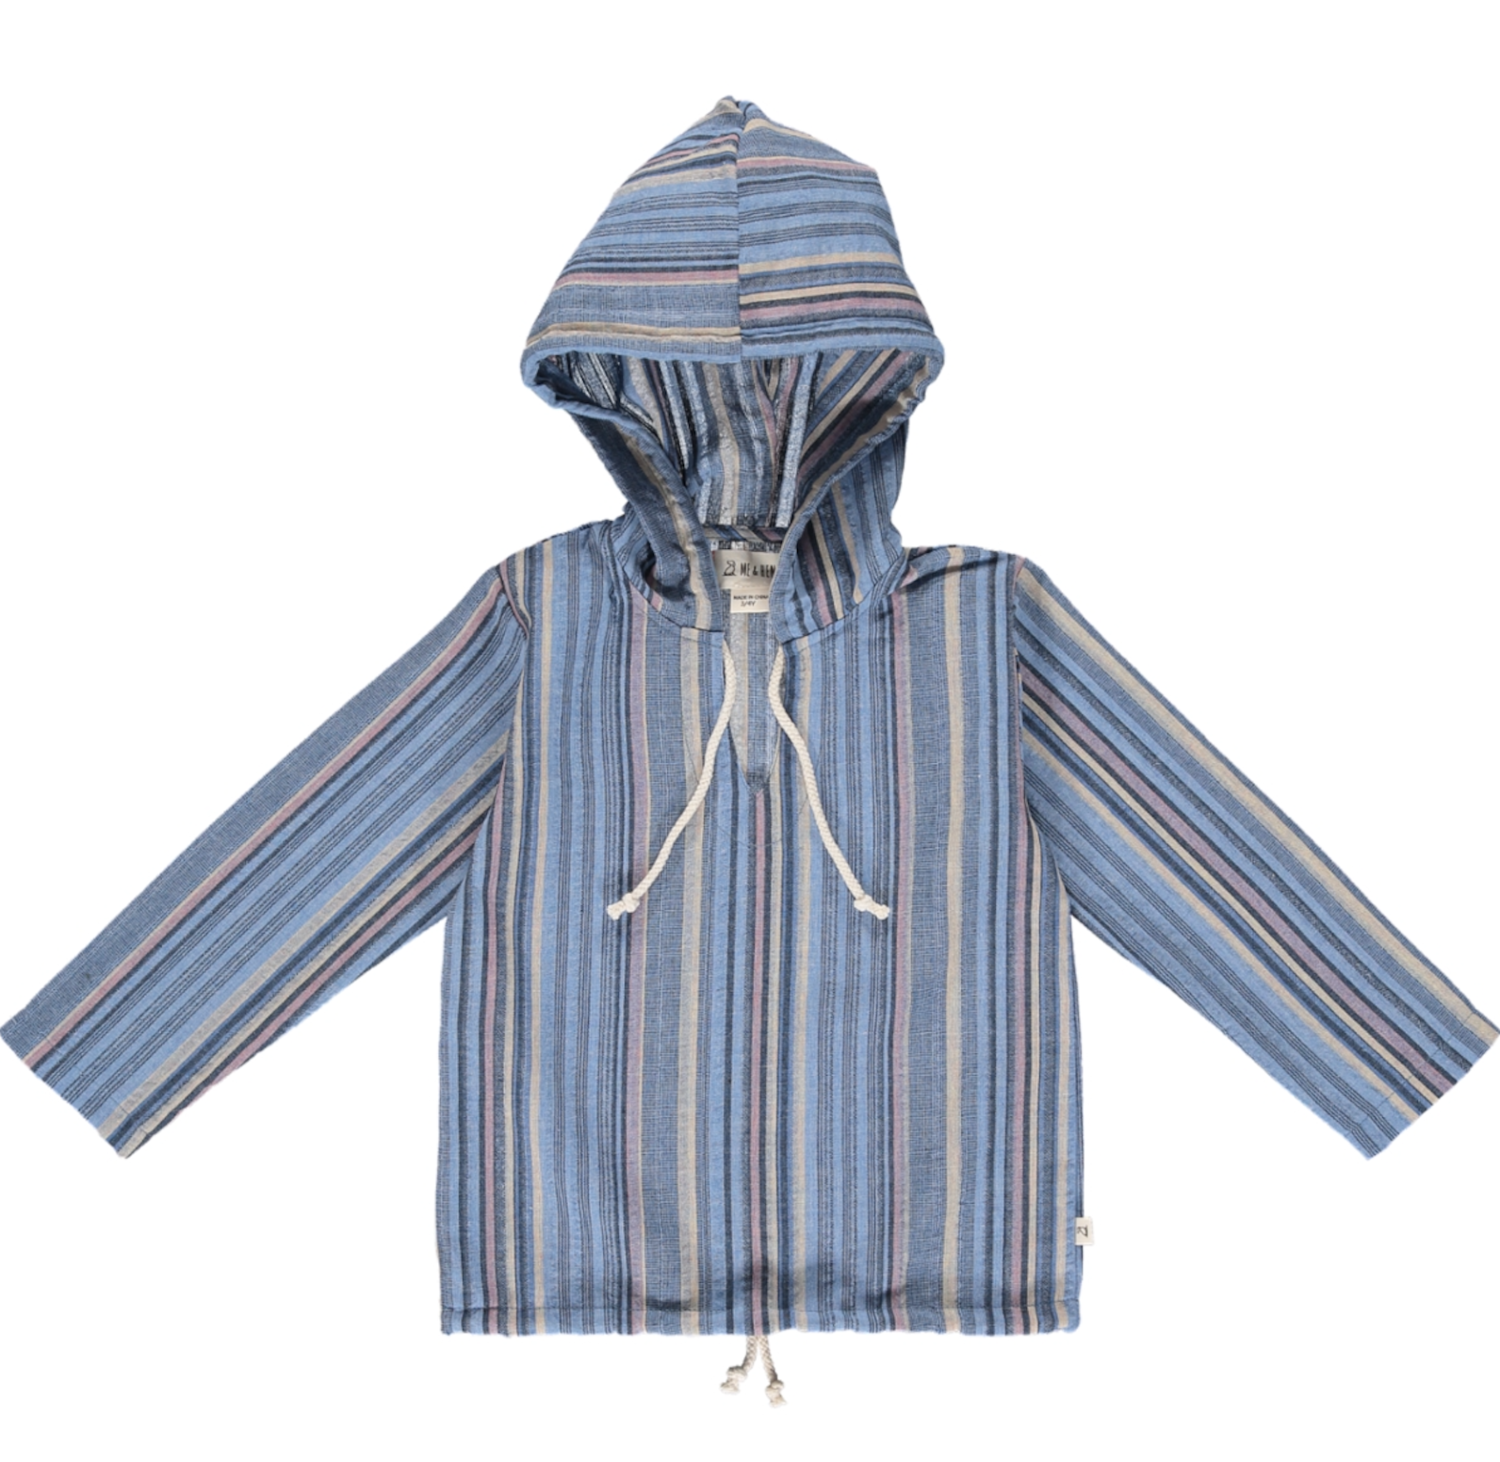 St. Ives gauze hooded top blue multi stripes